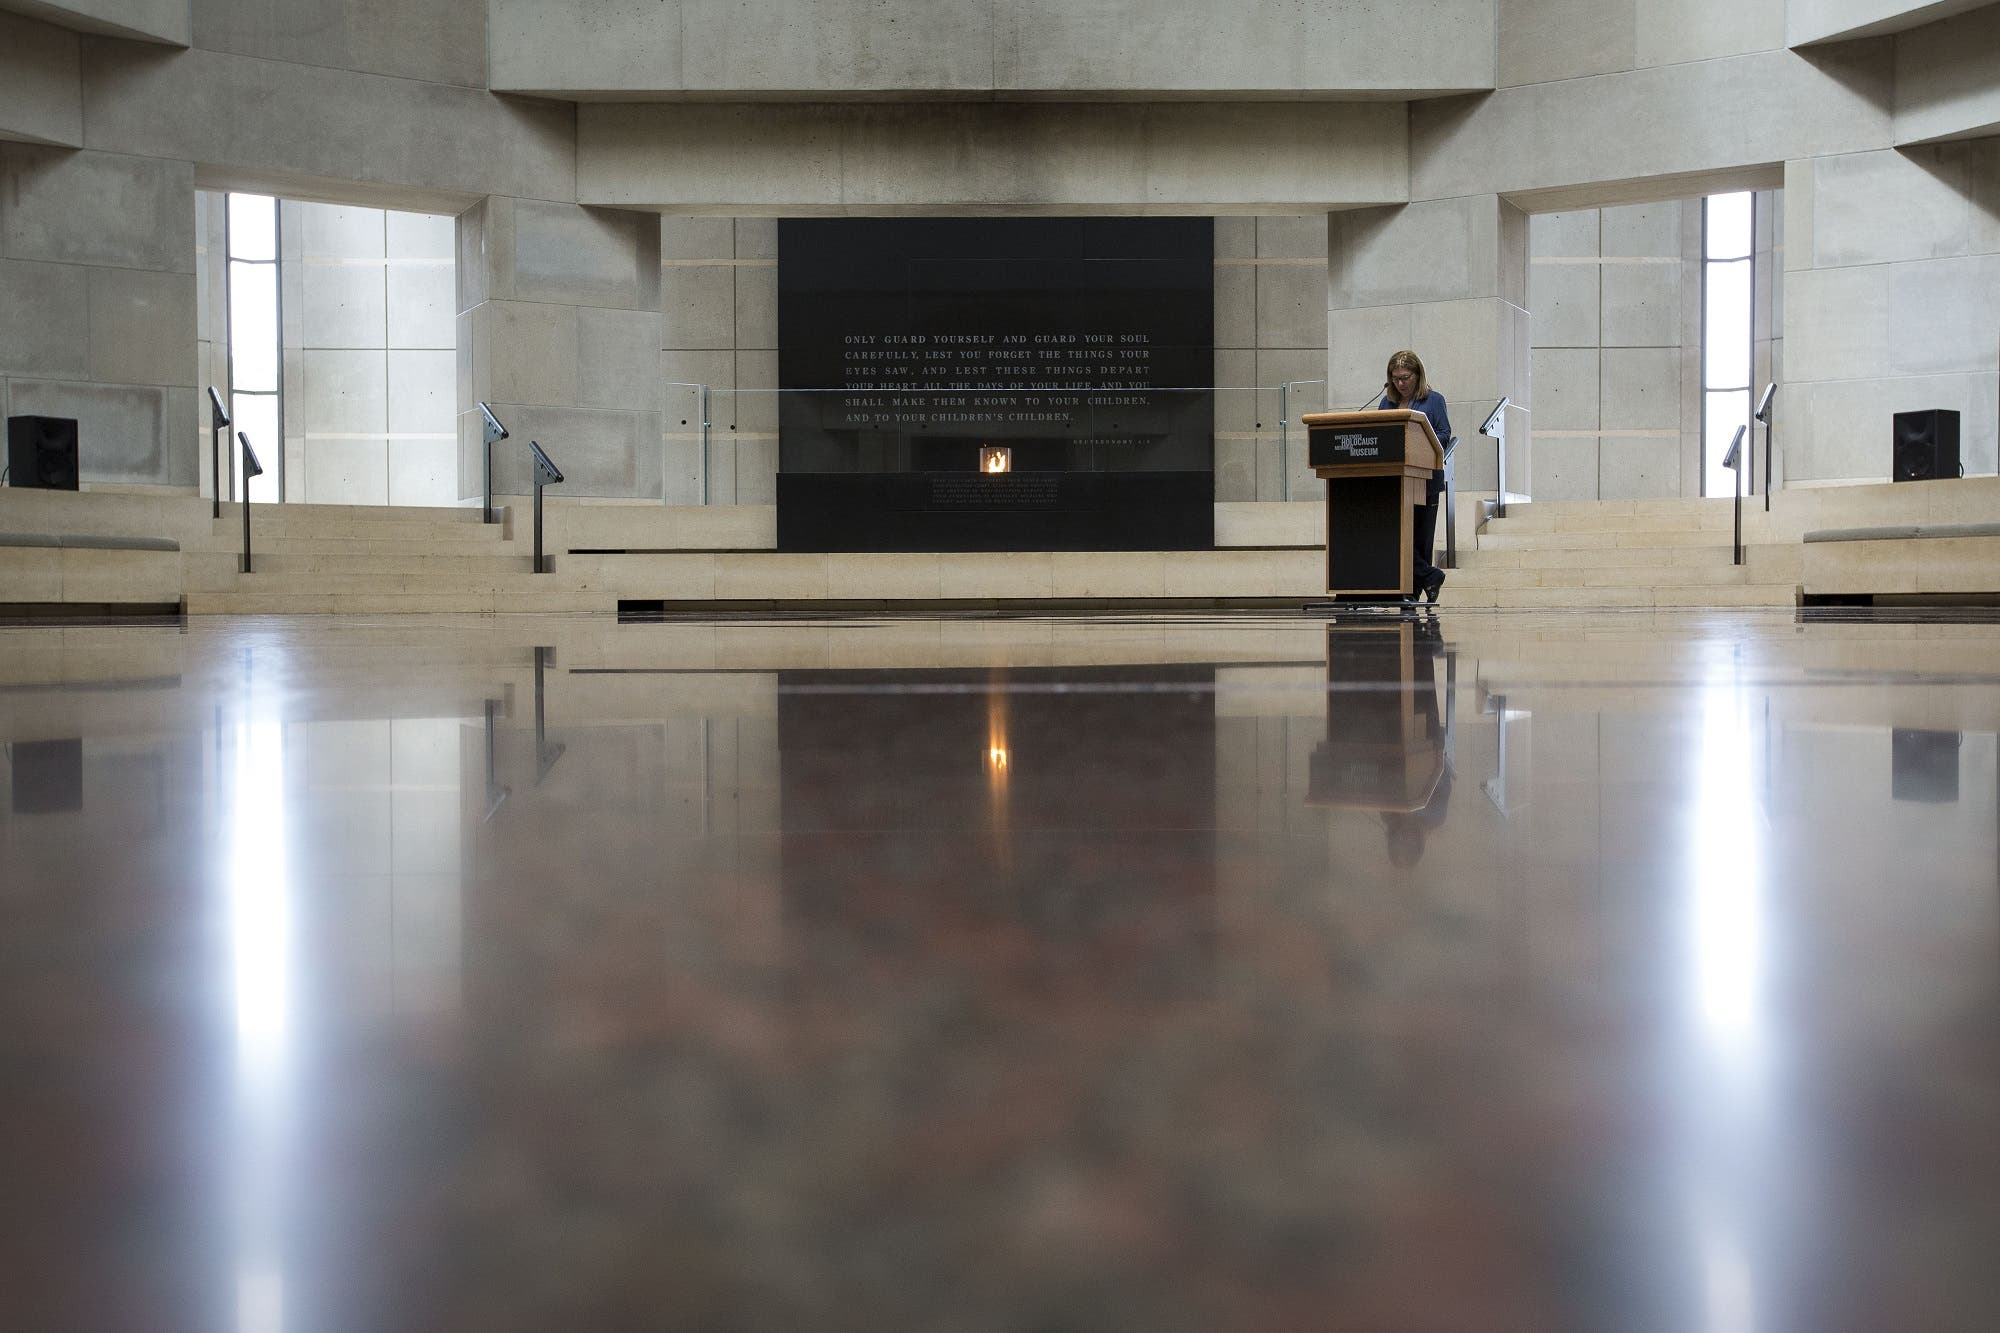 A volunteer reads names during the annual Names Reading ceremony to commemorate those who perished in the Holocaust, in the Hall of Remembrance at the United States Holocaust Memorial Museum, May 2, 2016, in Washington, DC. (AFP)